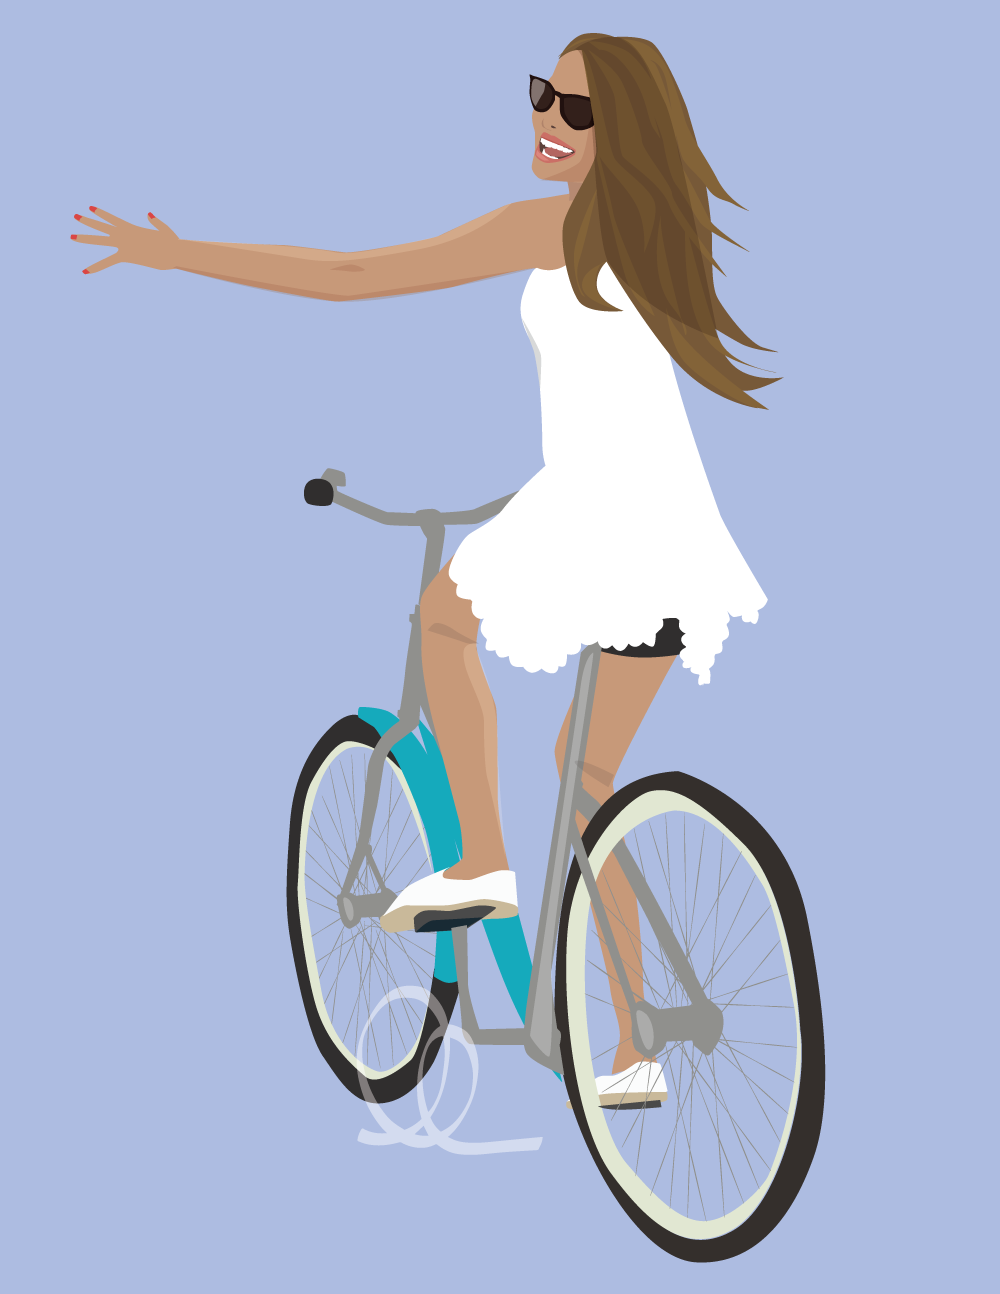 Girl on a Bicycle 2.0